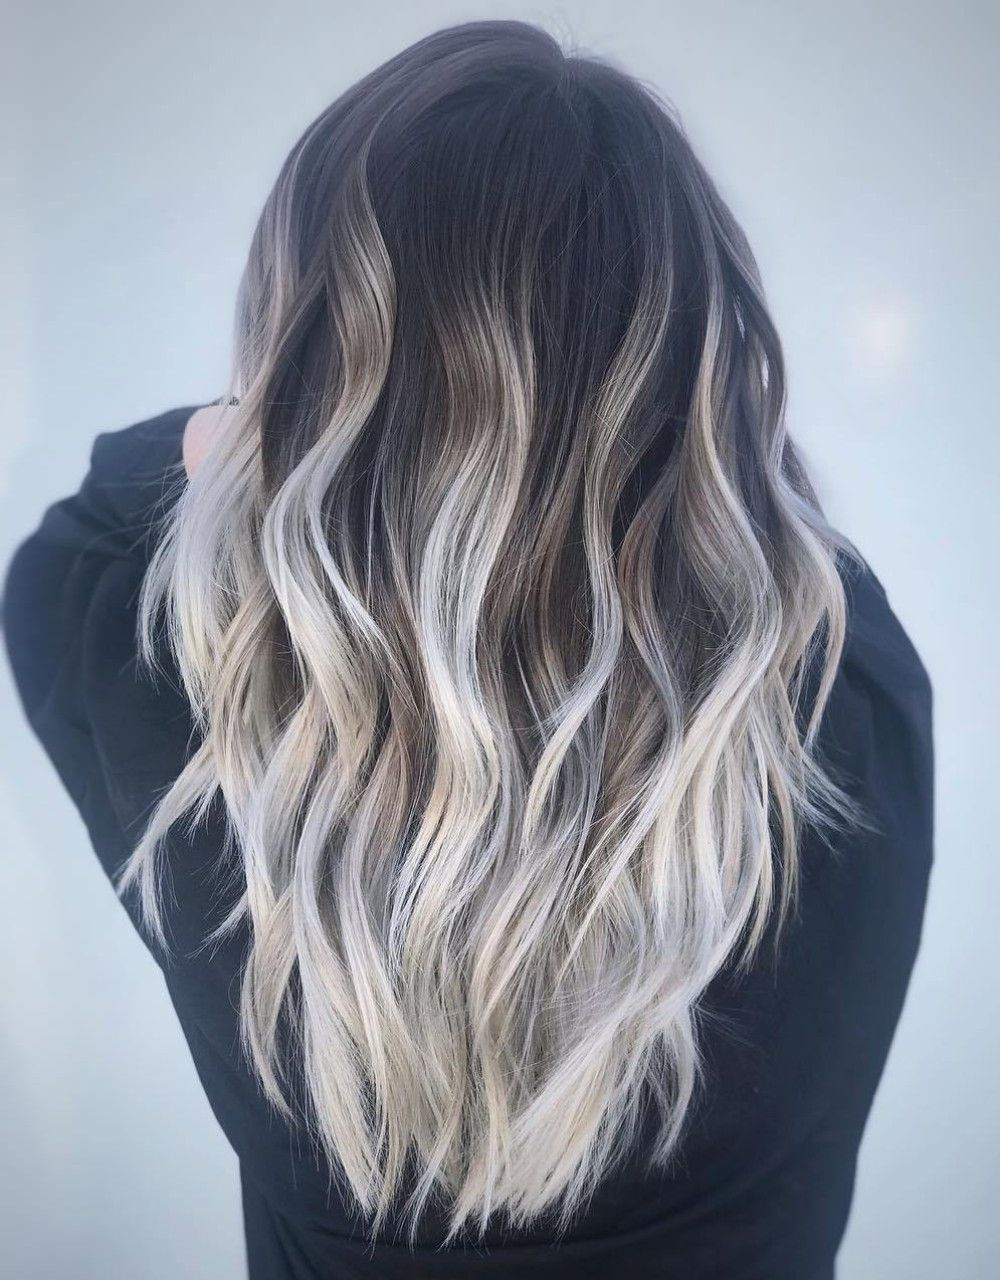 Silver Highlights For Dark Hair In 2020 Dark Roots Blonde Hair Dark Roots Blonde Hair Balayage Blonde Hair With Roots